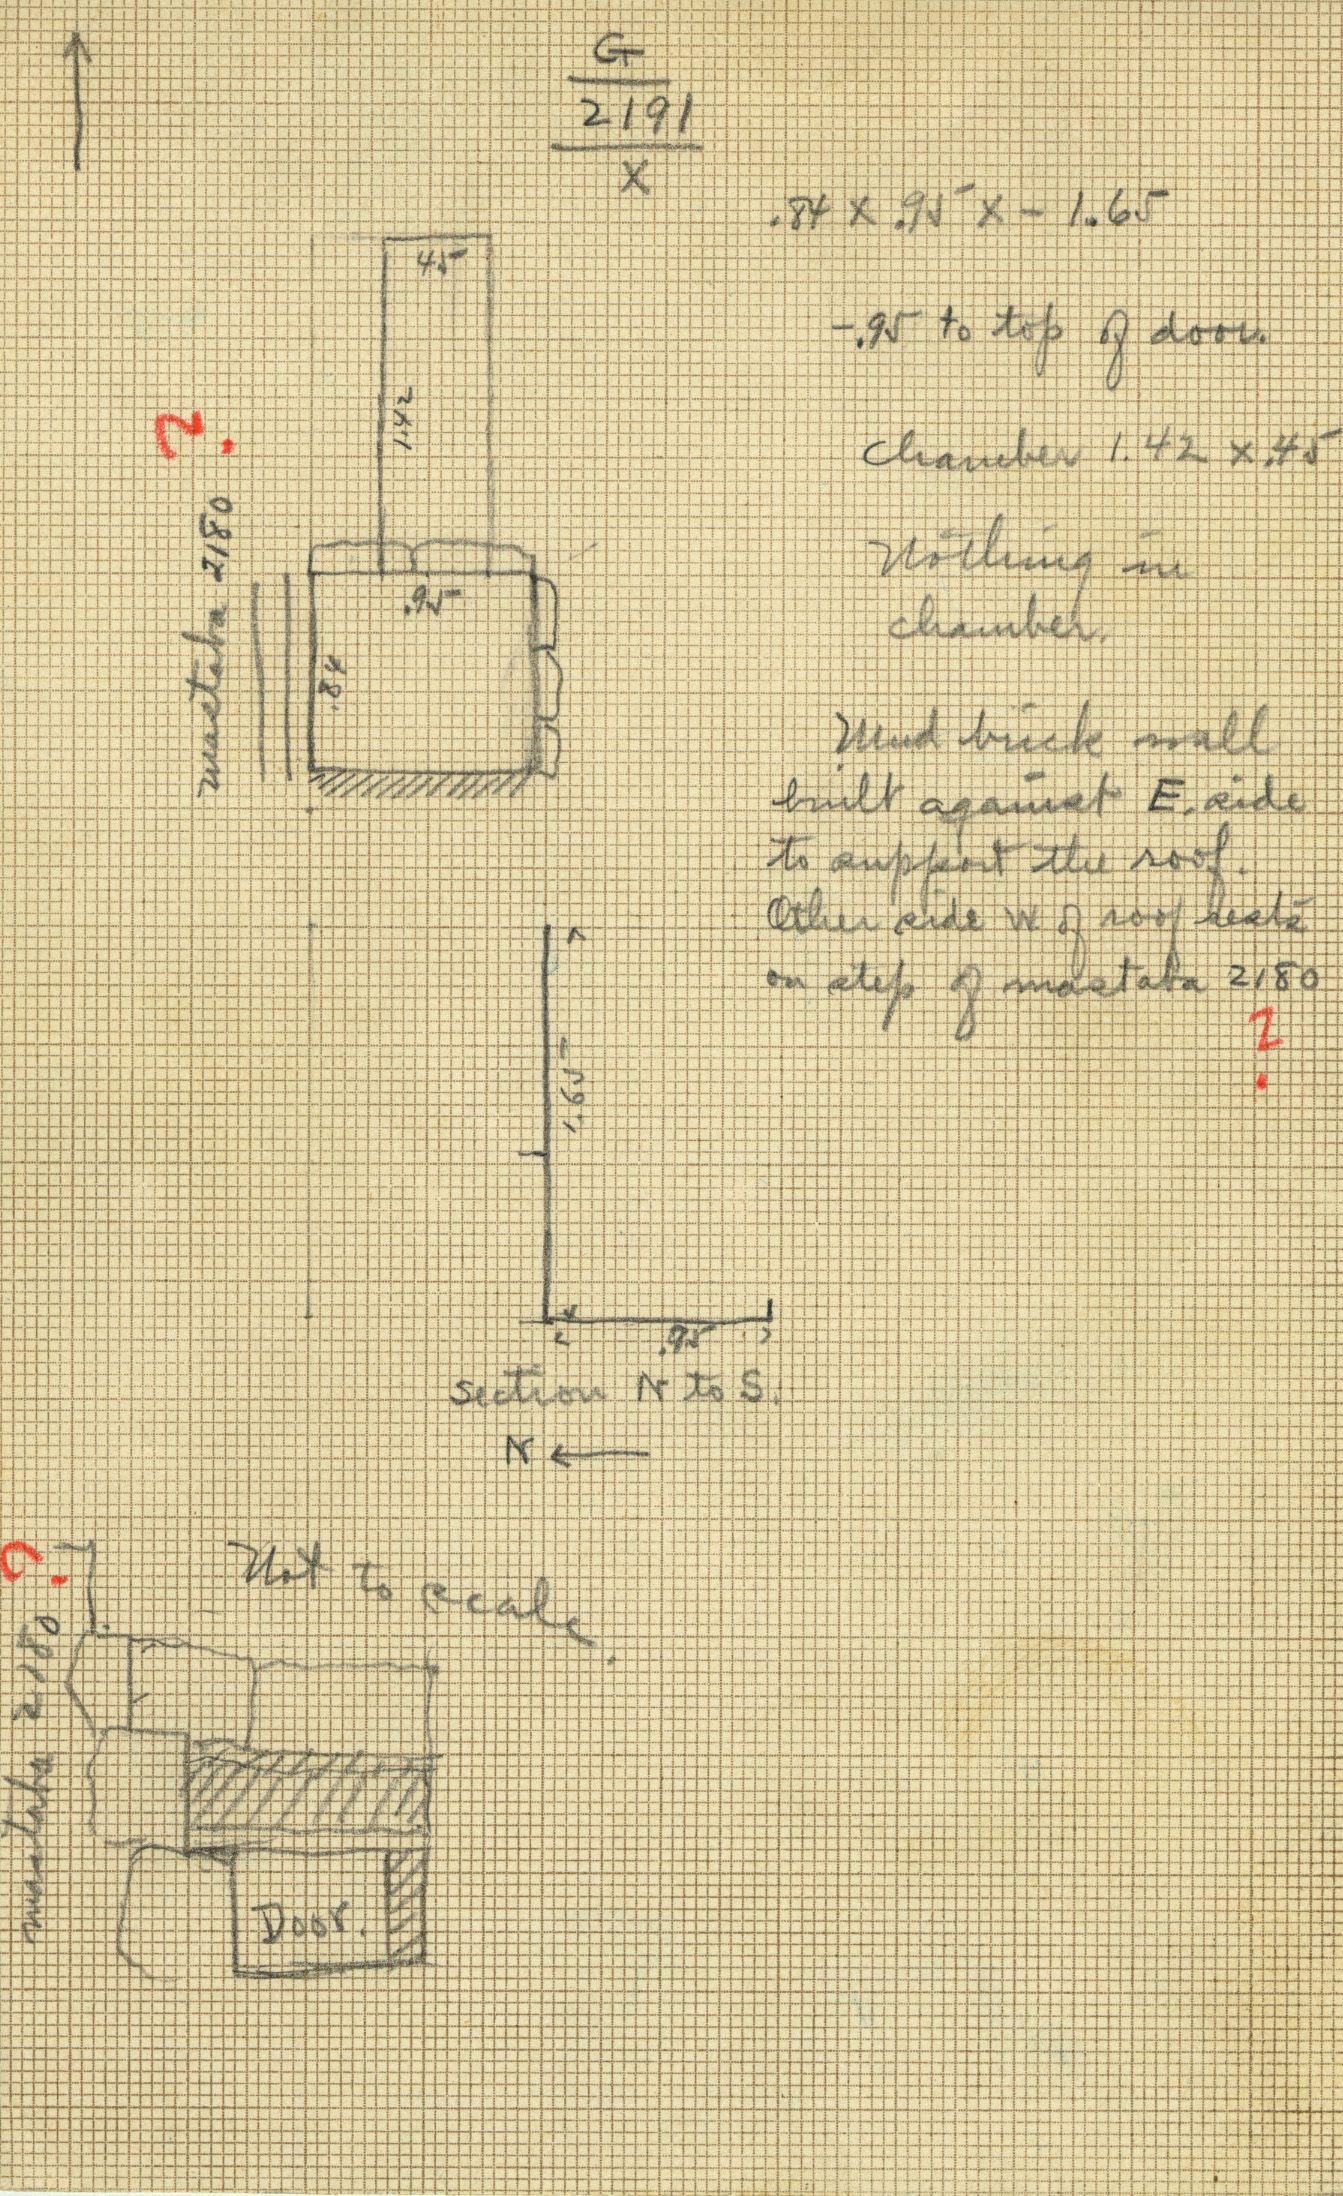 Maps and plans: G 2191, Shaft X